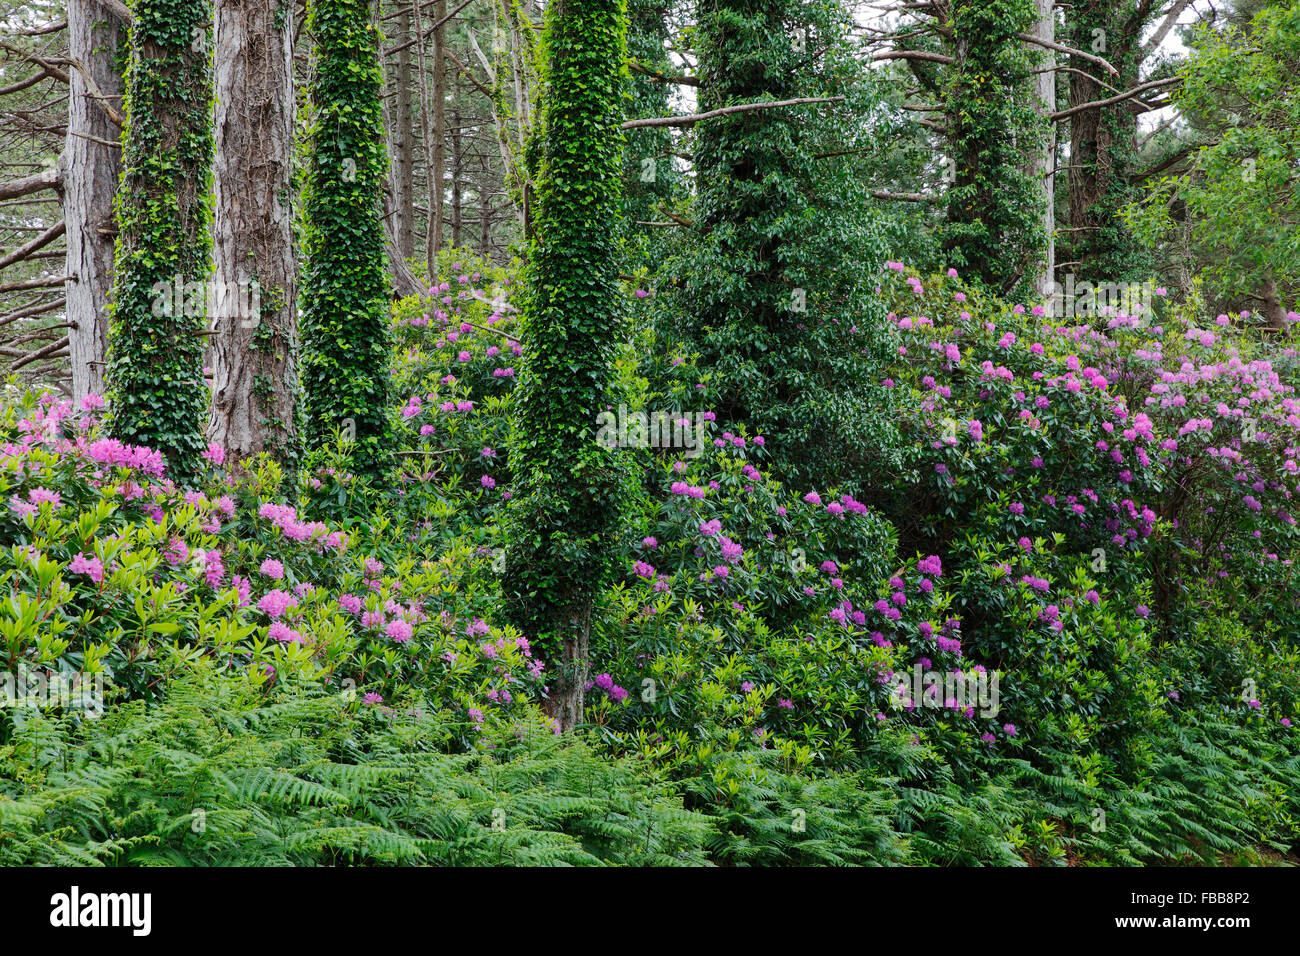 wild growing rhododendron at the roadside near Kenmare on the Ring of Beara, County Cork, Ireland - Stock Image